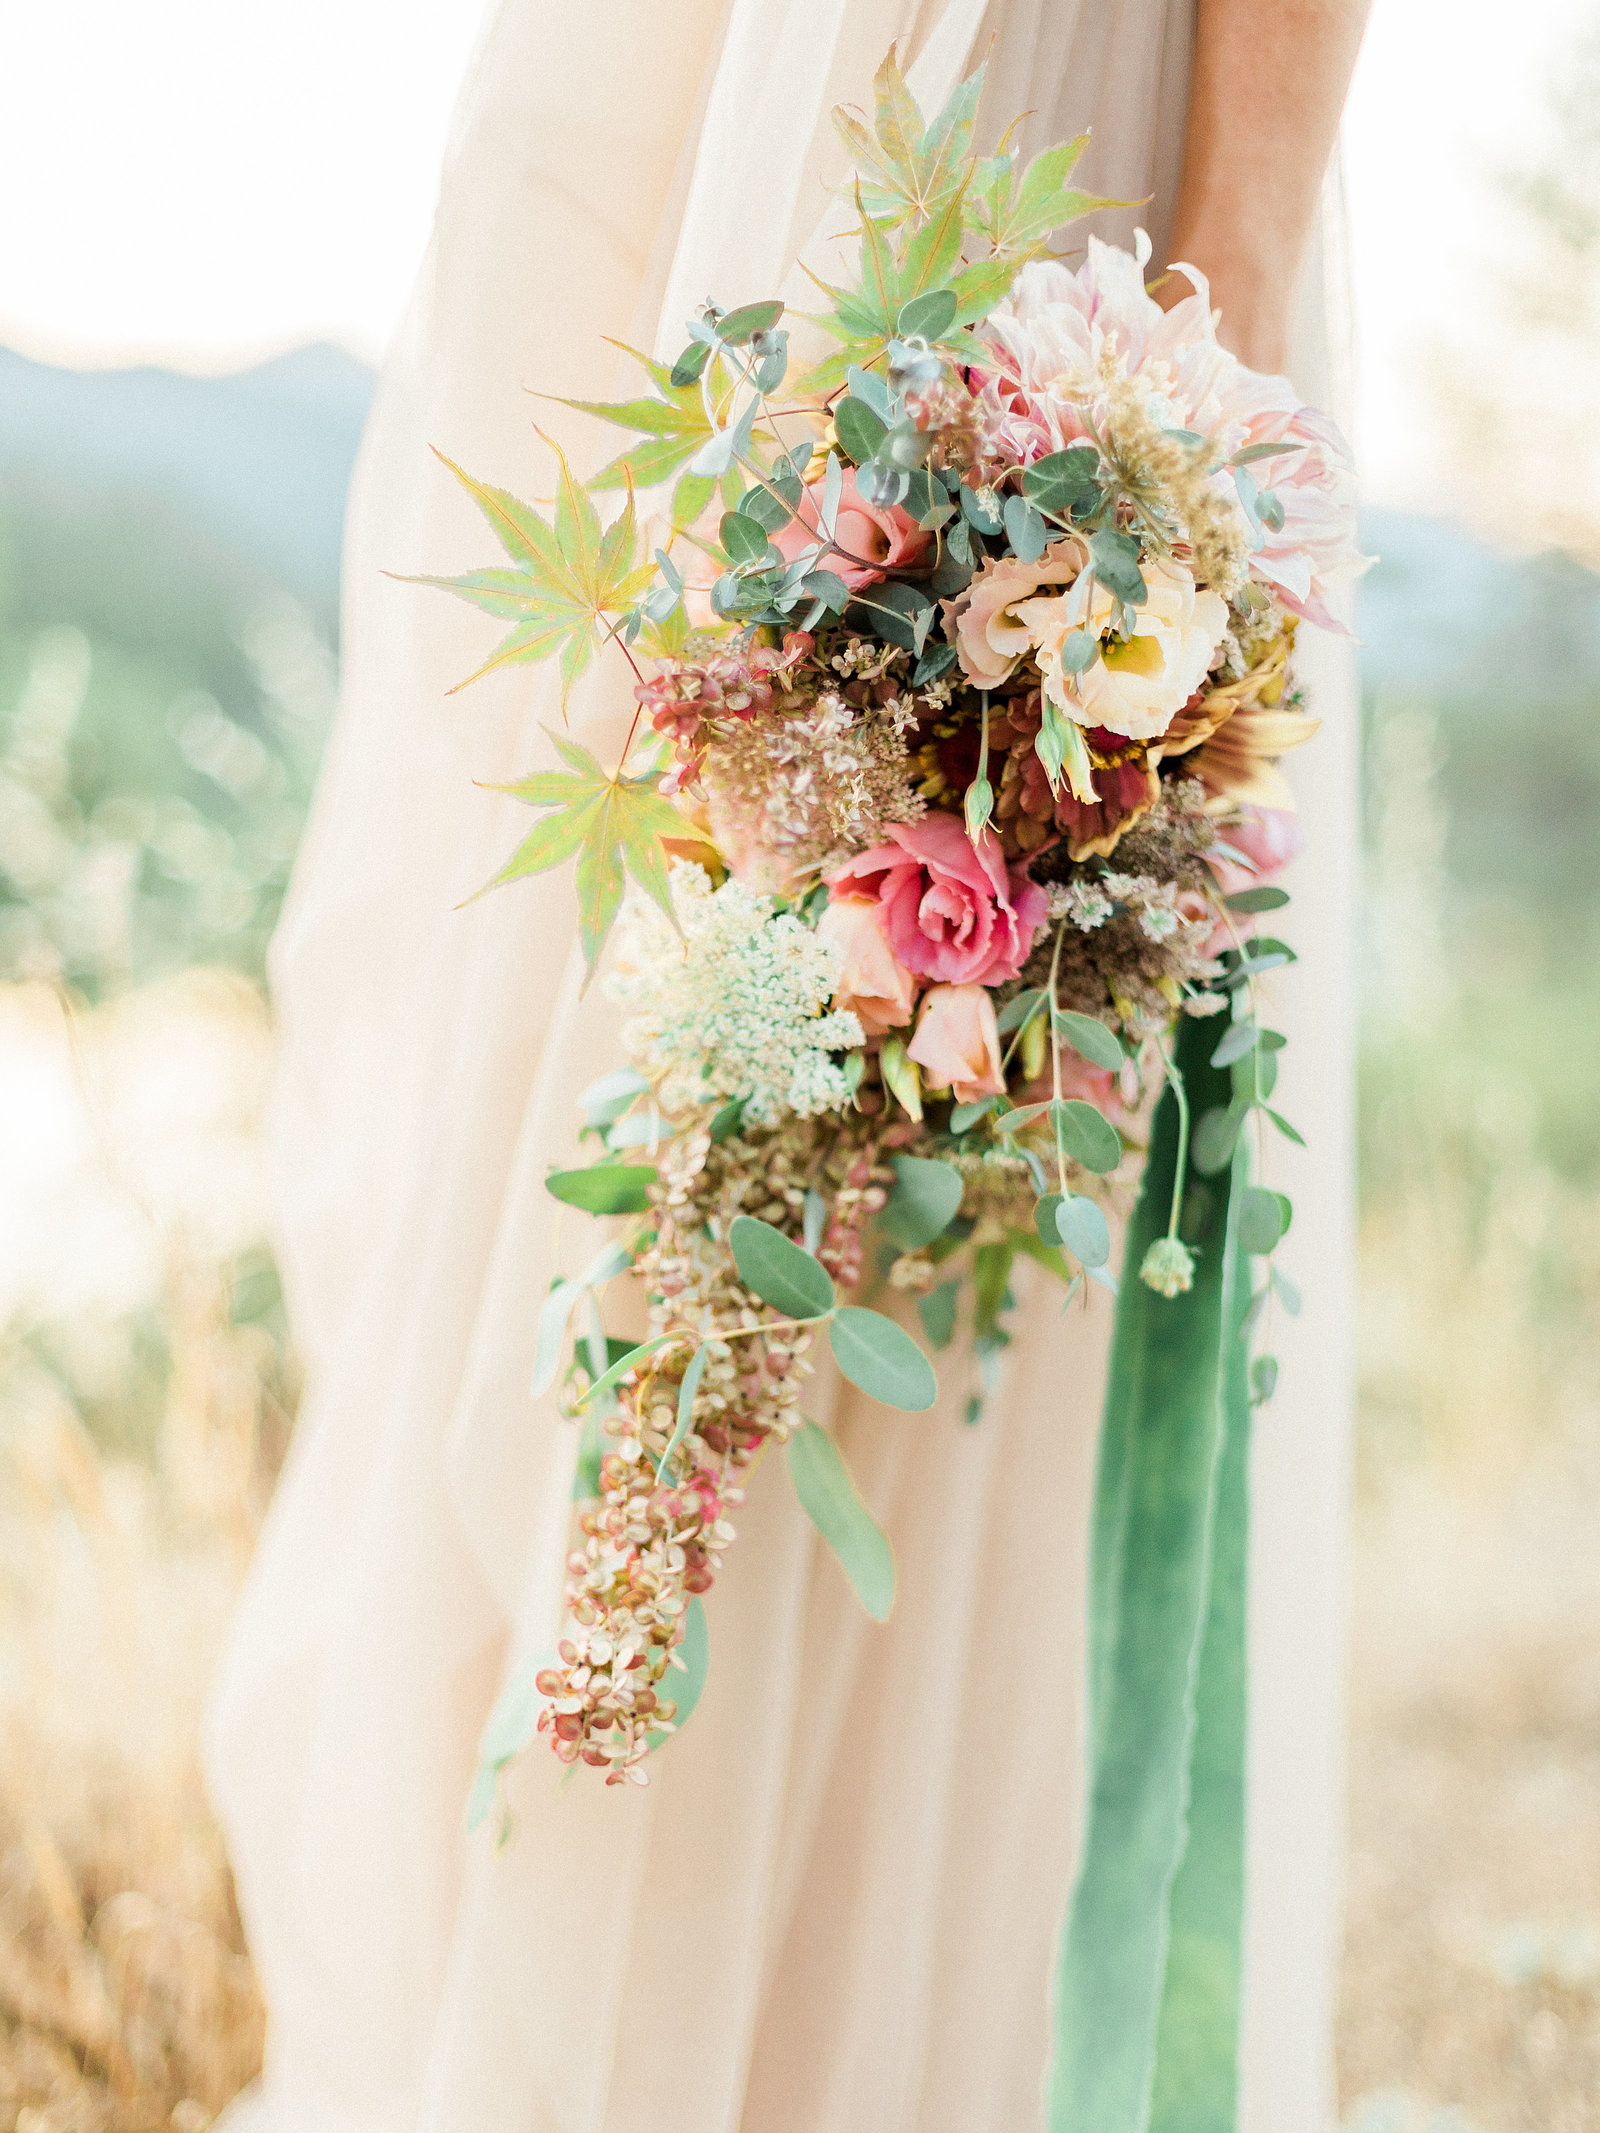 Pink, green and yellow bridal bouquet